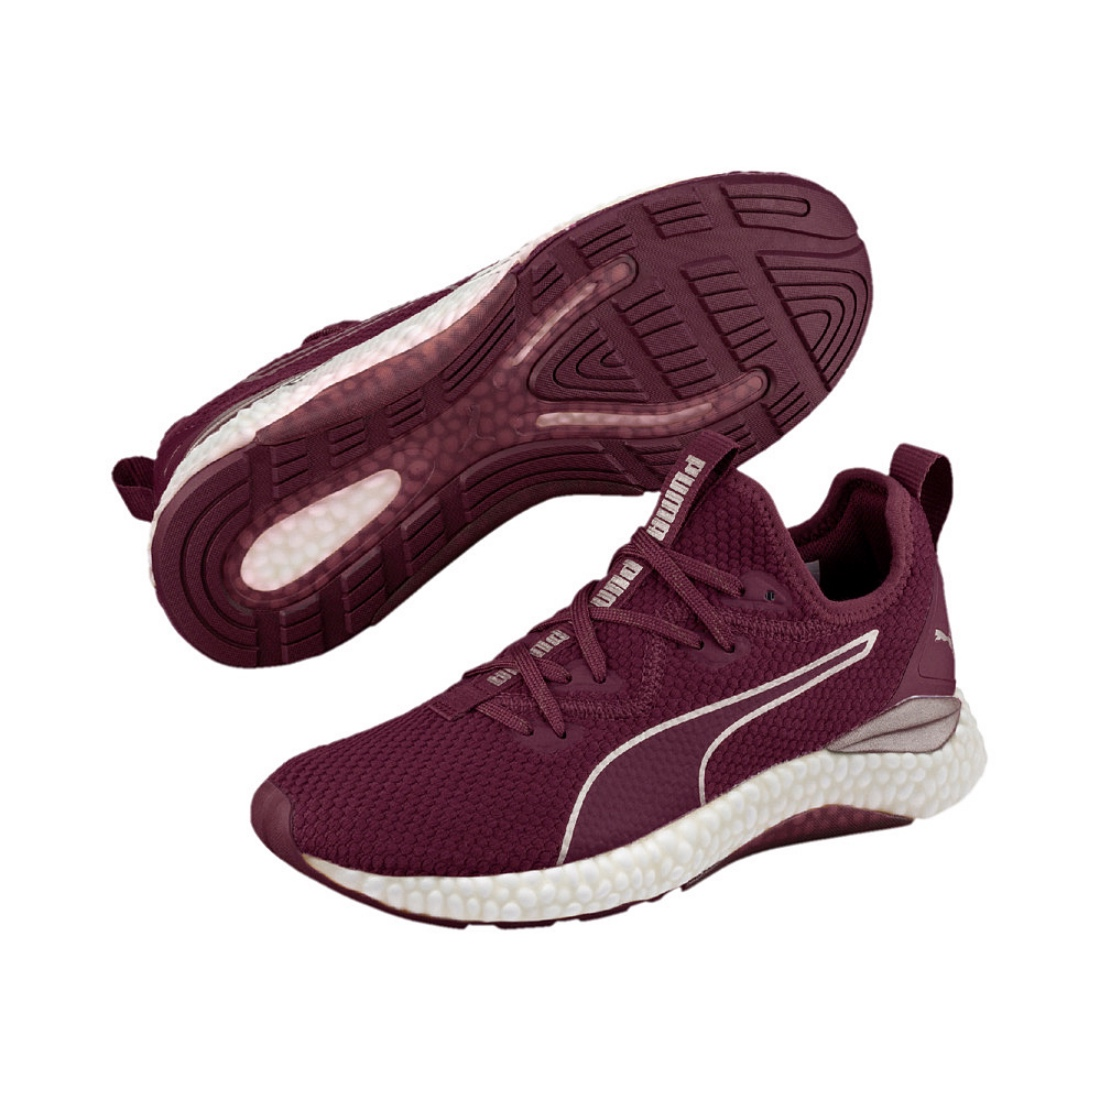 ea0d9b6f39658f Details about Puma Hybrid Runner Luxe Wns Running Shoes Fitness Shoes  Trainers 191578 Ladies